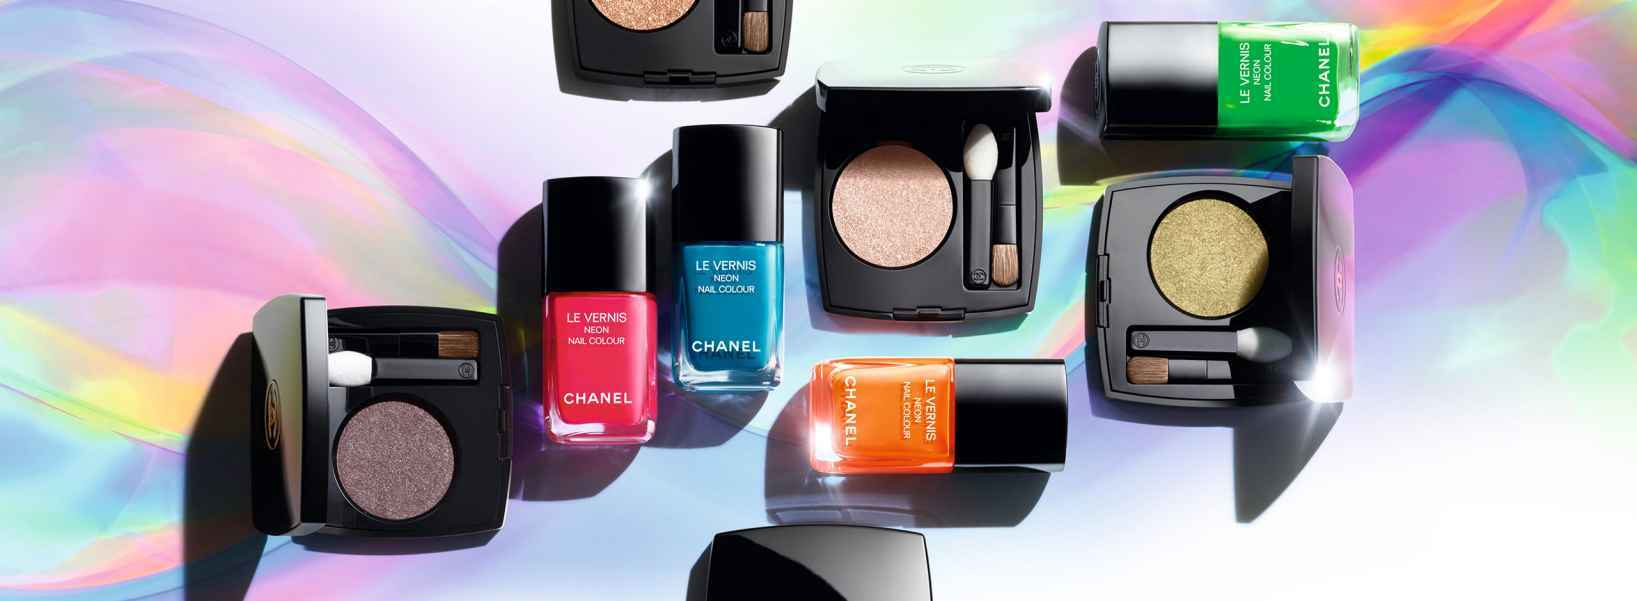 Chanel NEON WAVE